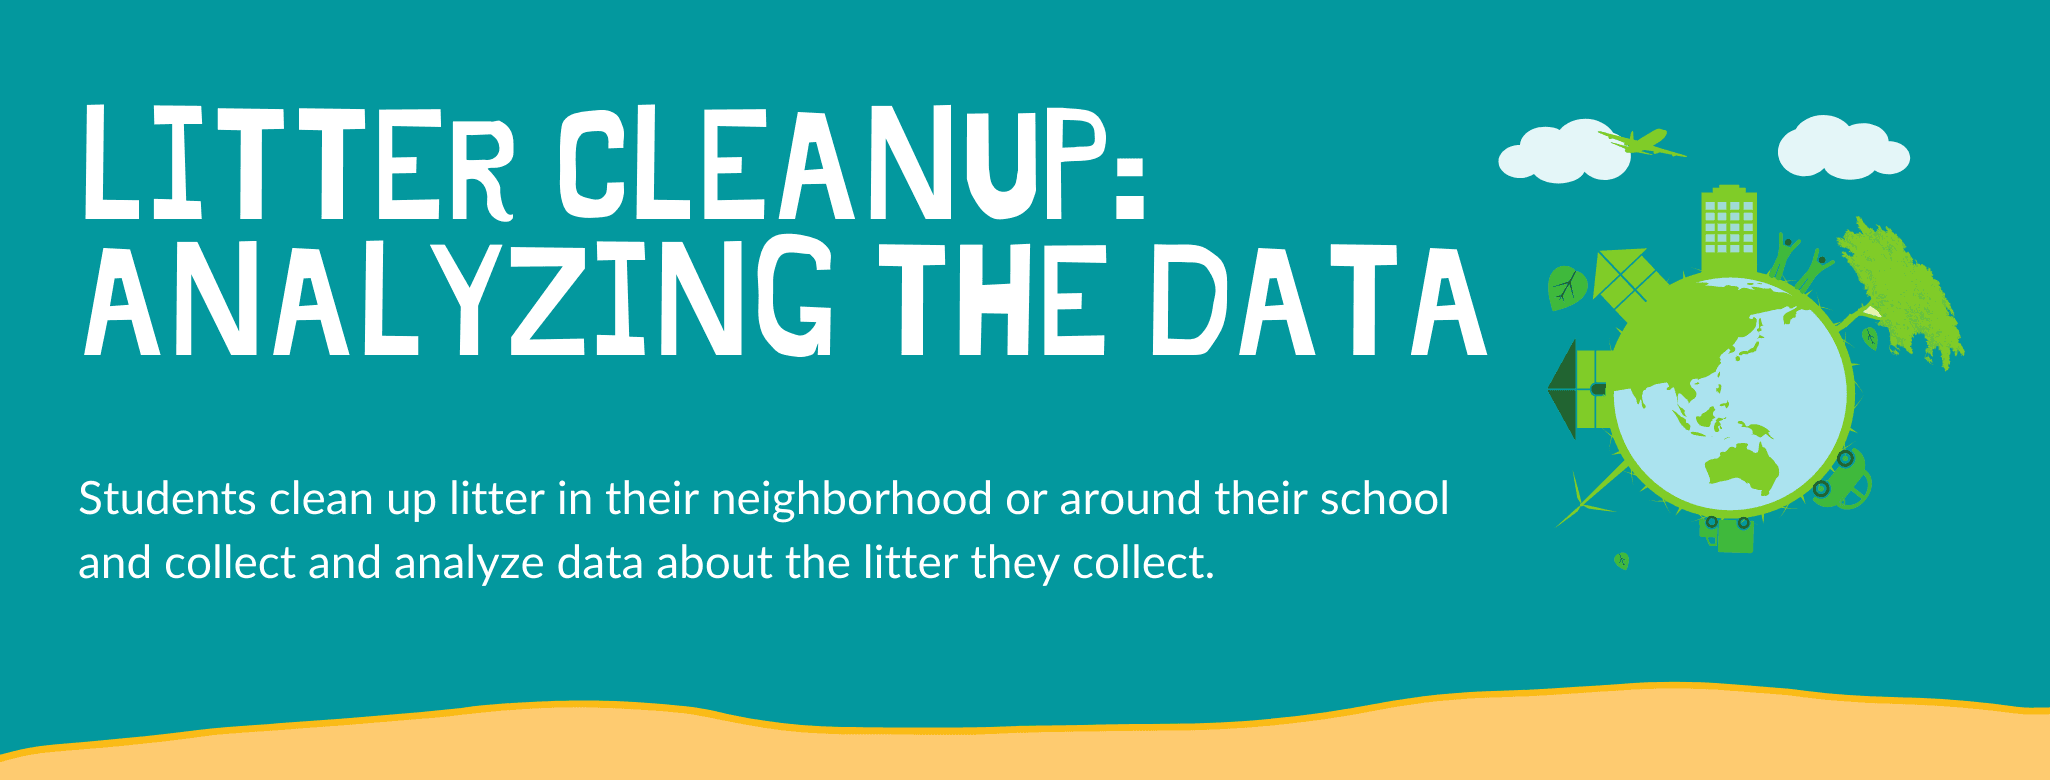 Litter Cleanup Activity: Analyzing the Data